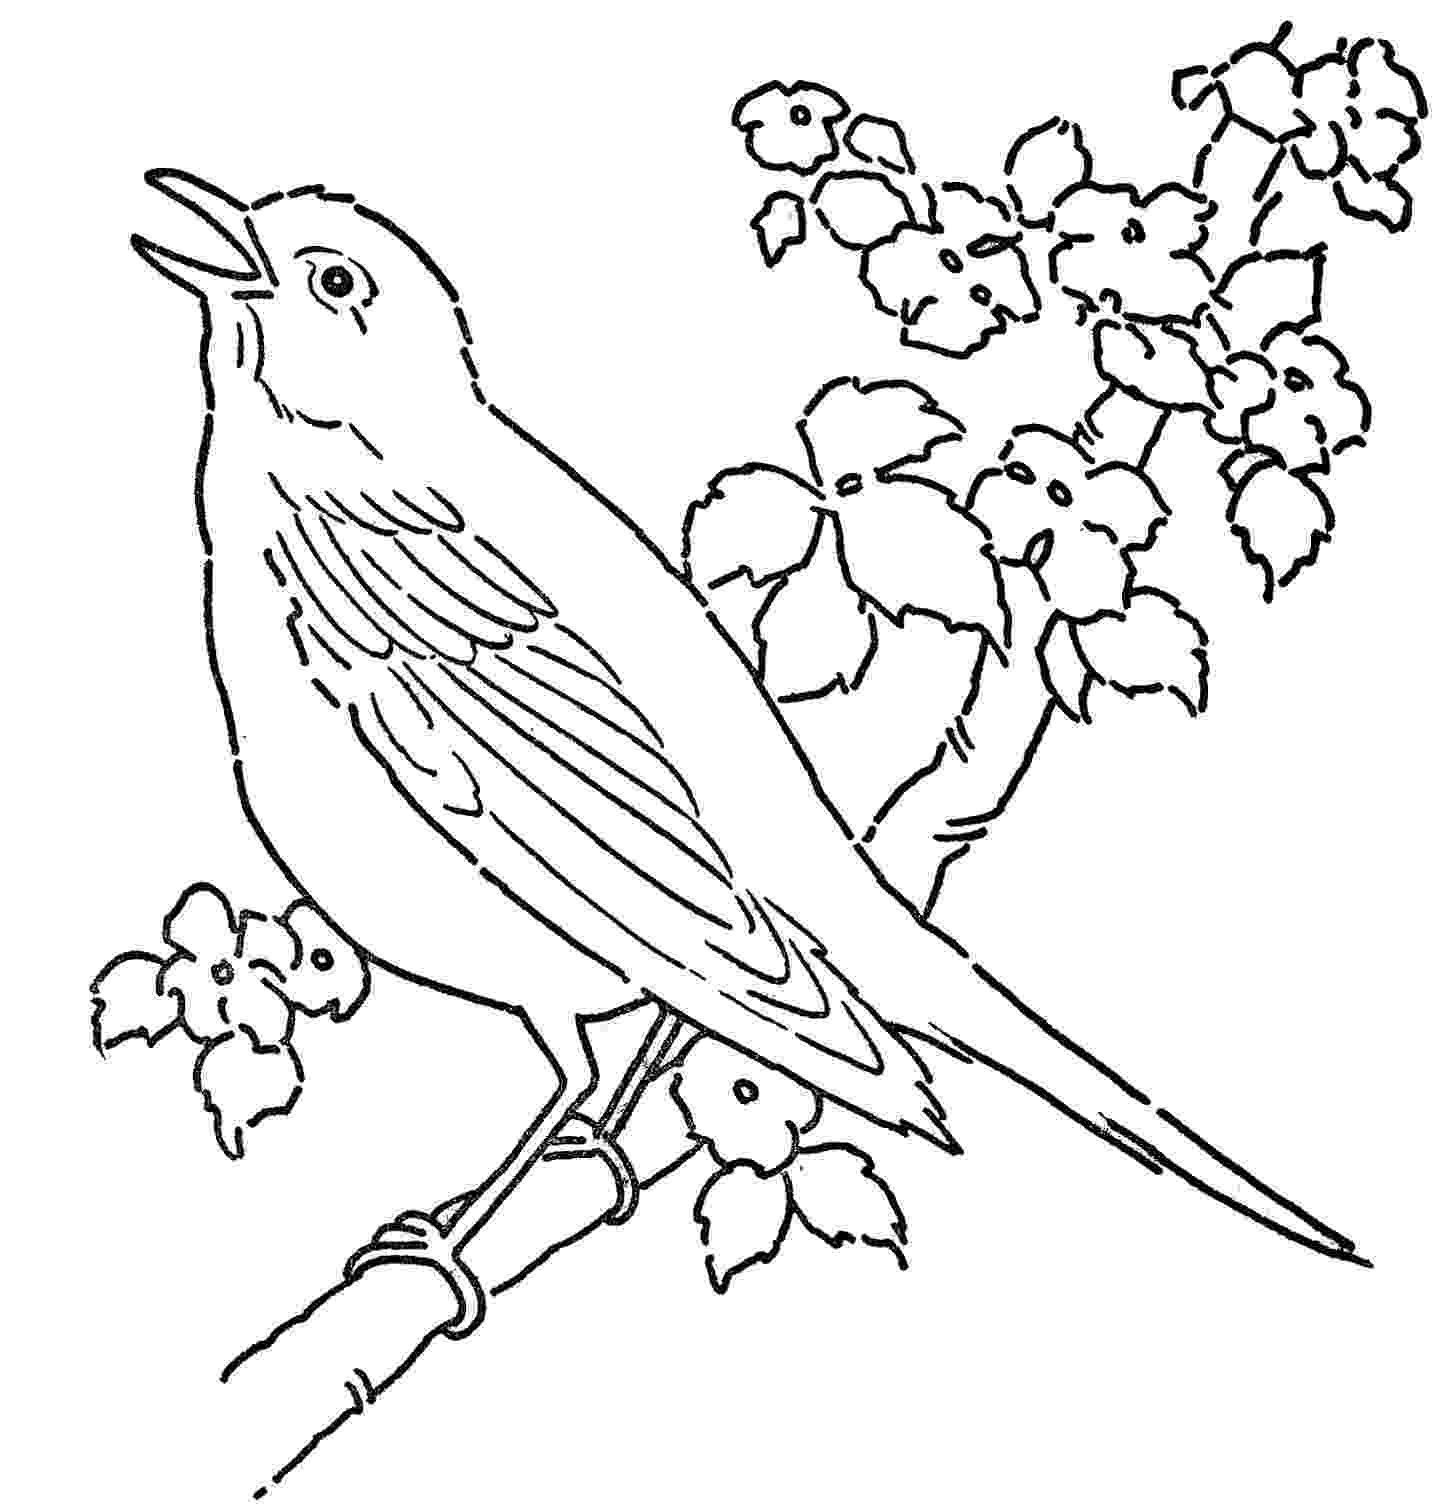 free printable bird coloring pages free printable angry bird coloring pages for kids free coloring pages printable bird